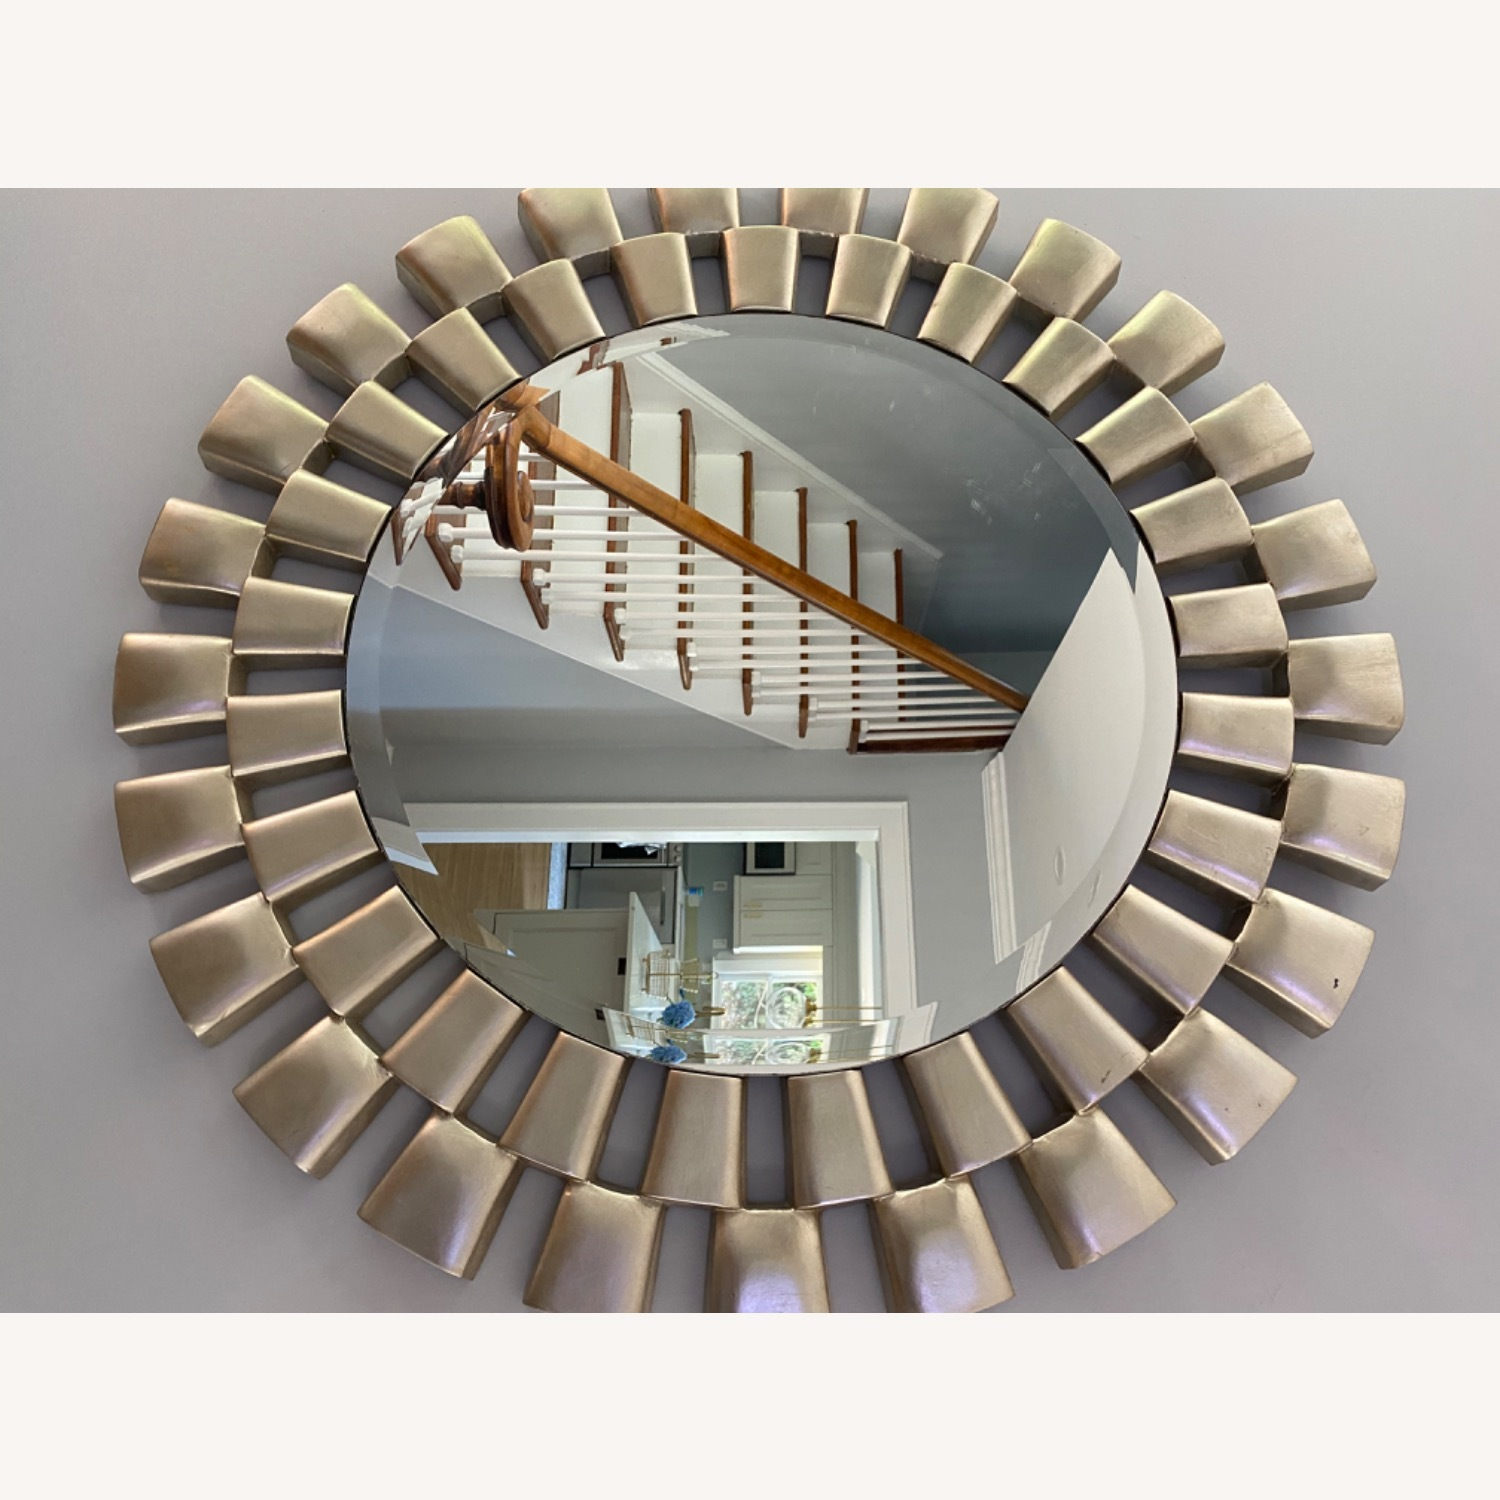 Wayfair Starburst Mirror - image-1